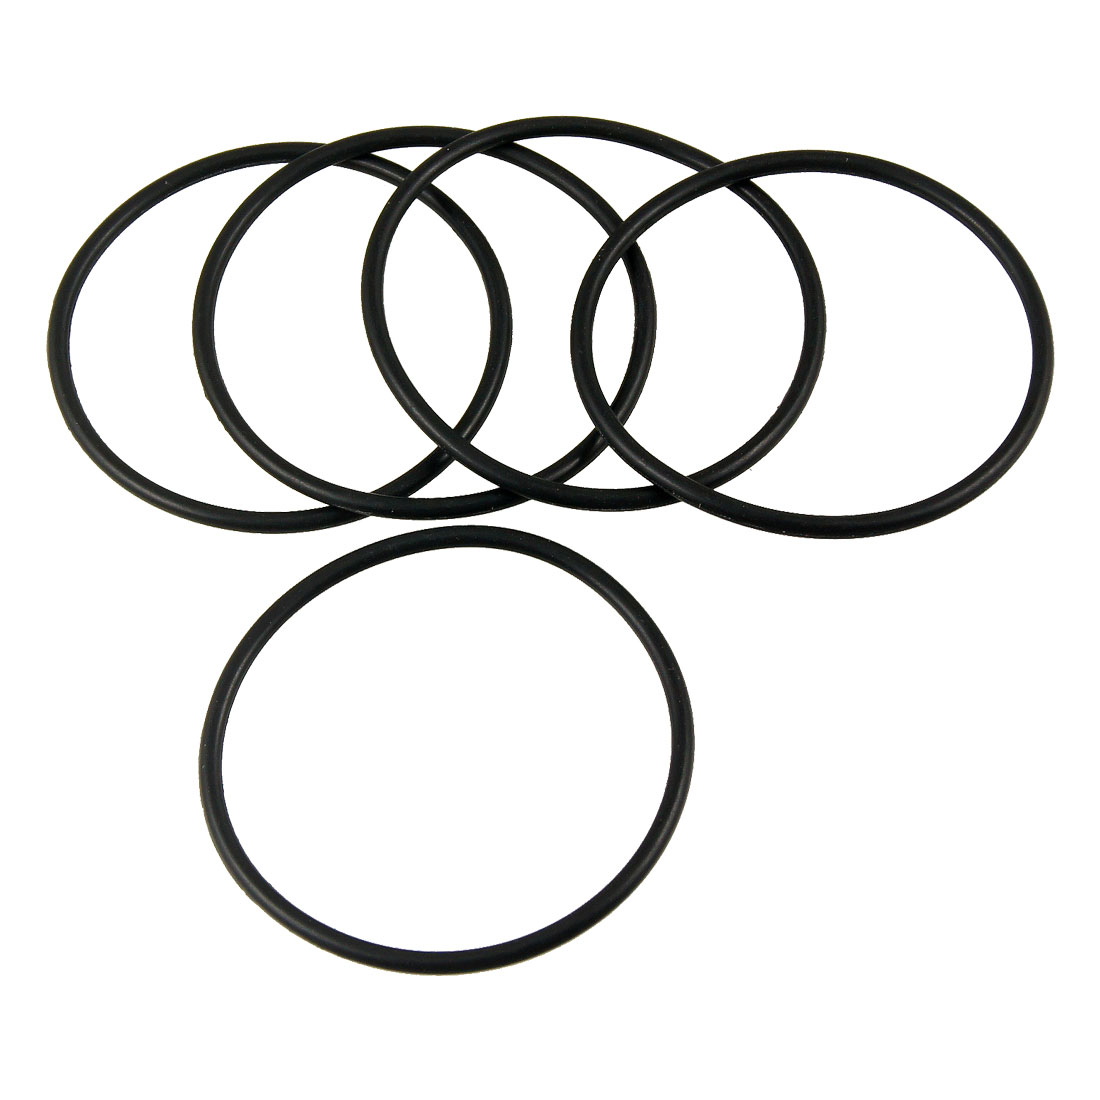 Uxcell 5 Pcs 2 4mm Rubber Sealing Oil Filter O Rings Gaskets Id